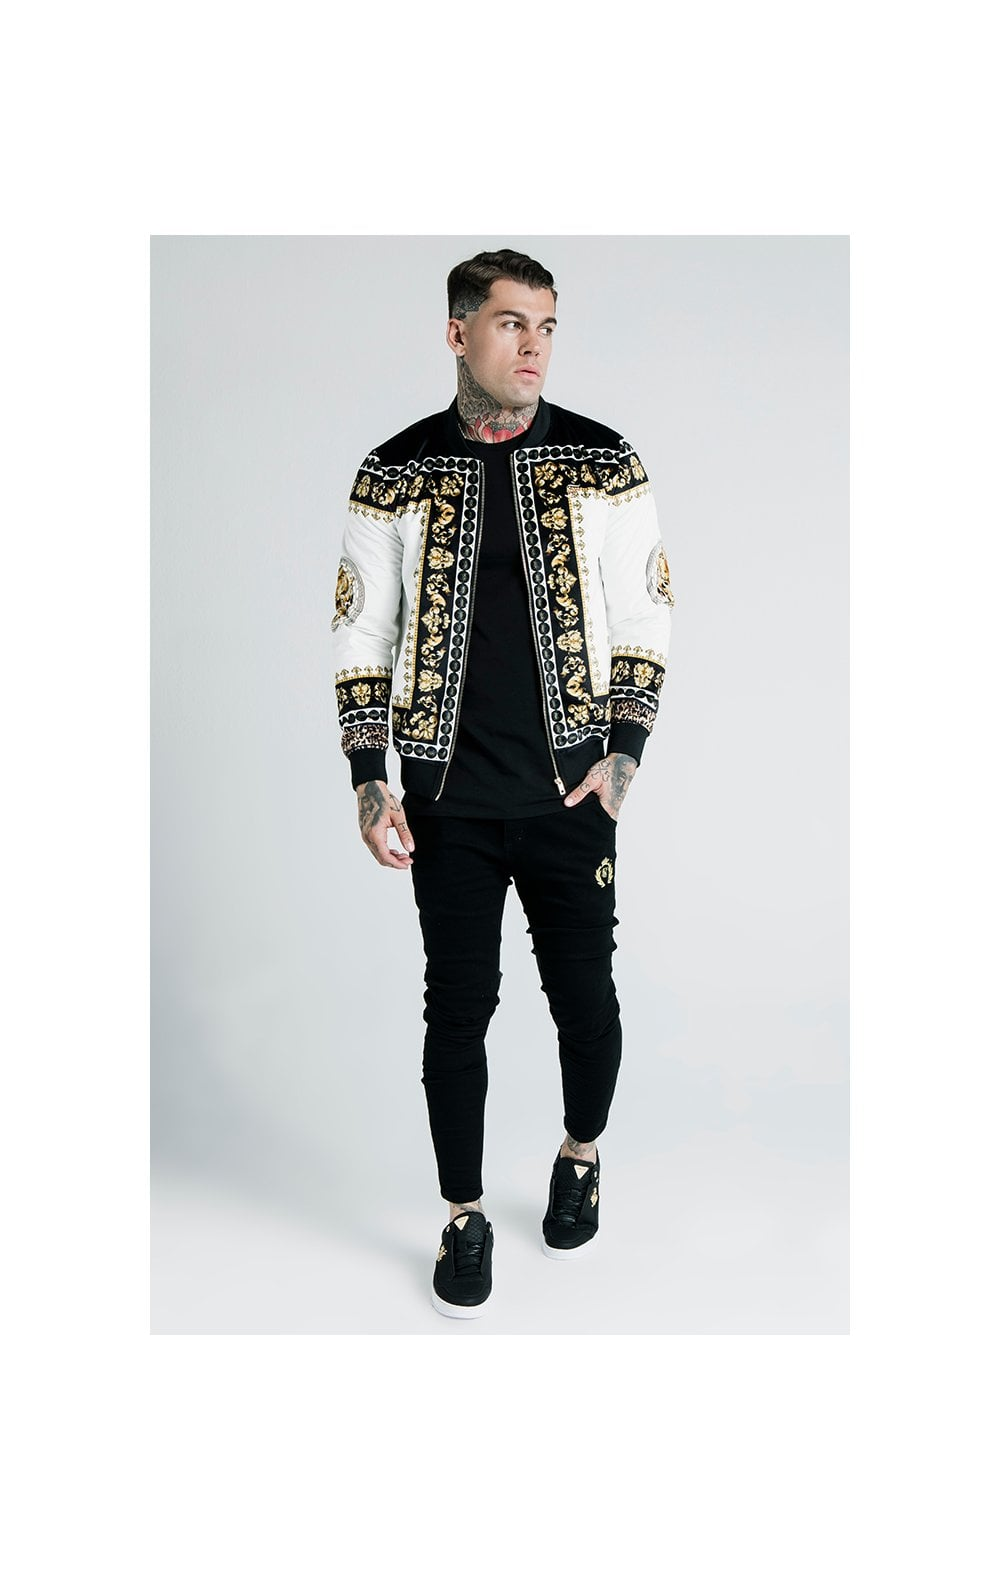 Load image into Gallery viewer, SikSilk x Dani Alves Bomber Jacket - Black, Off White & Gold (4)